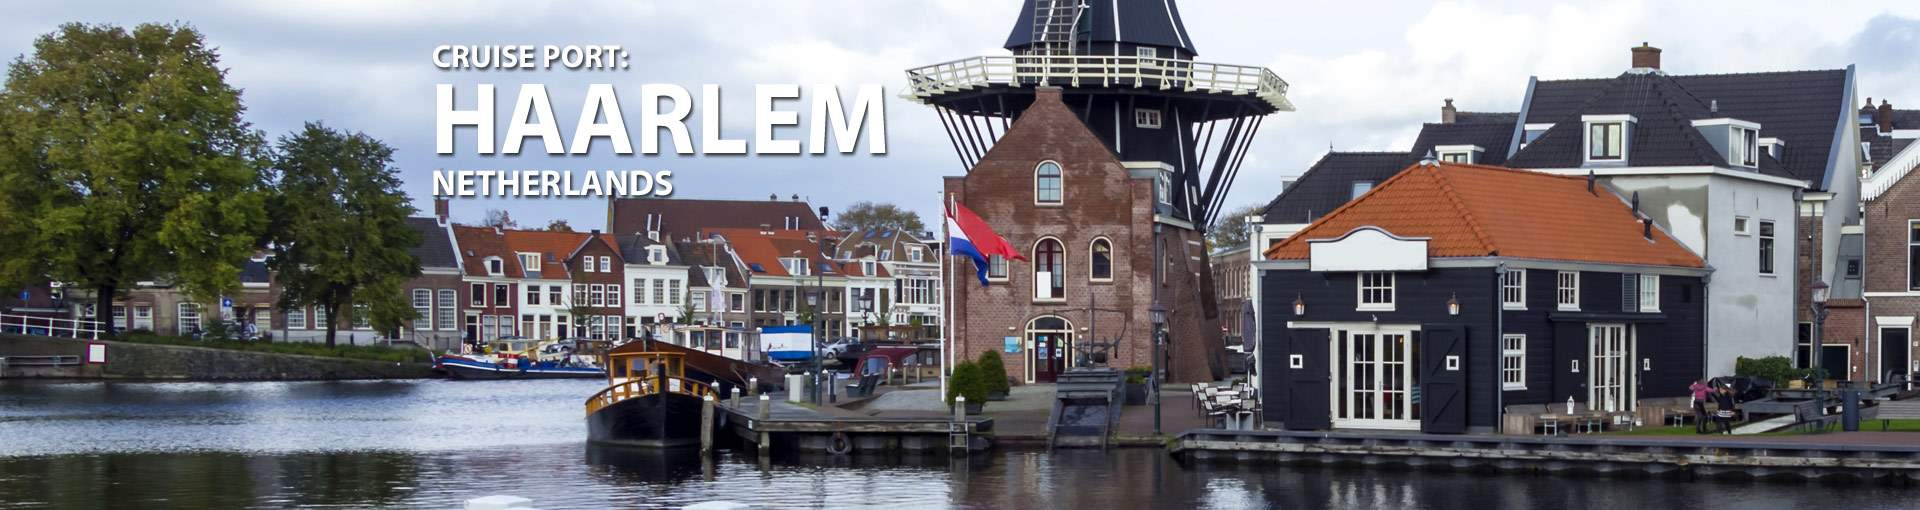 Cruises from Haarlem, Netherlands